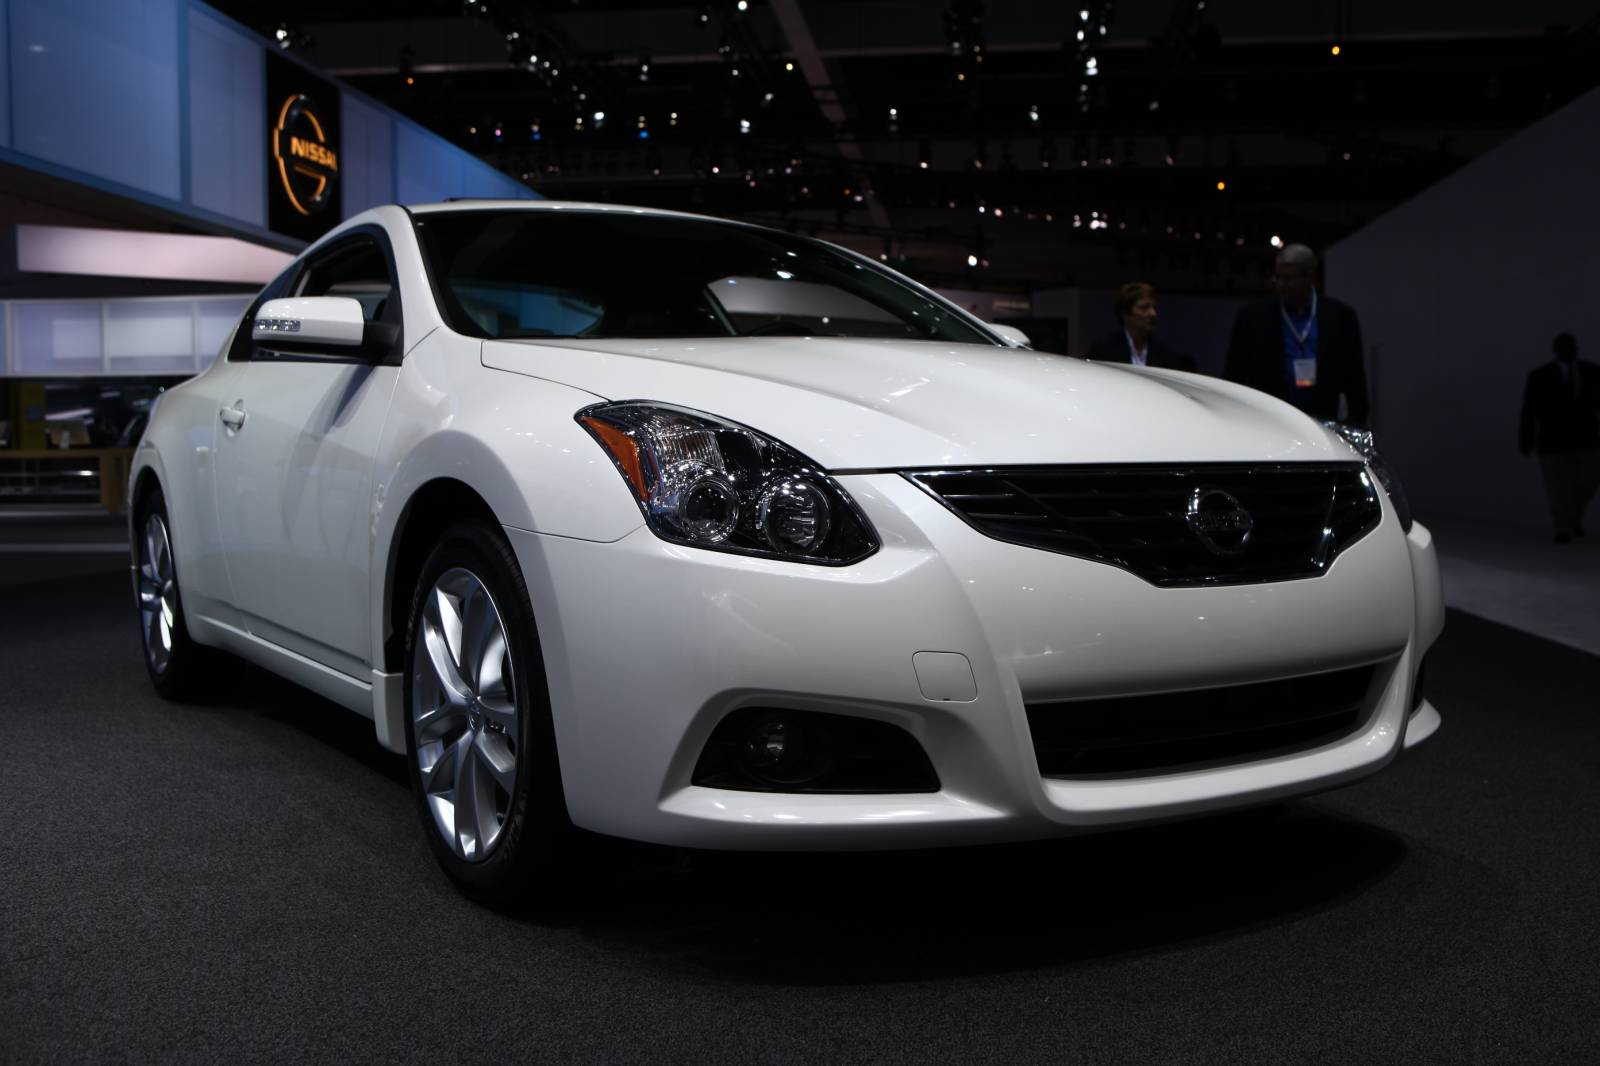 Bose Speakers For Cars >> Best Car Models & All About Cars: Nissan 2012 Altima Coupe